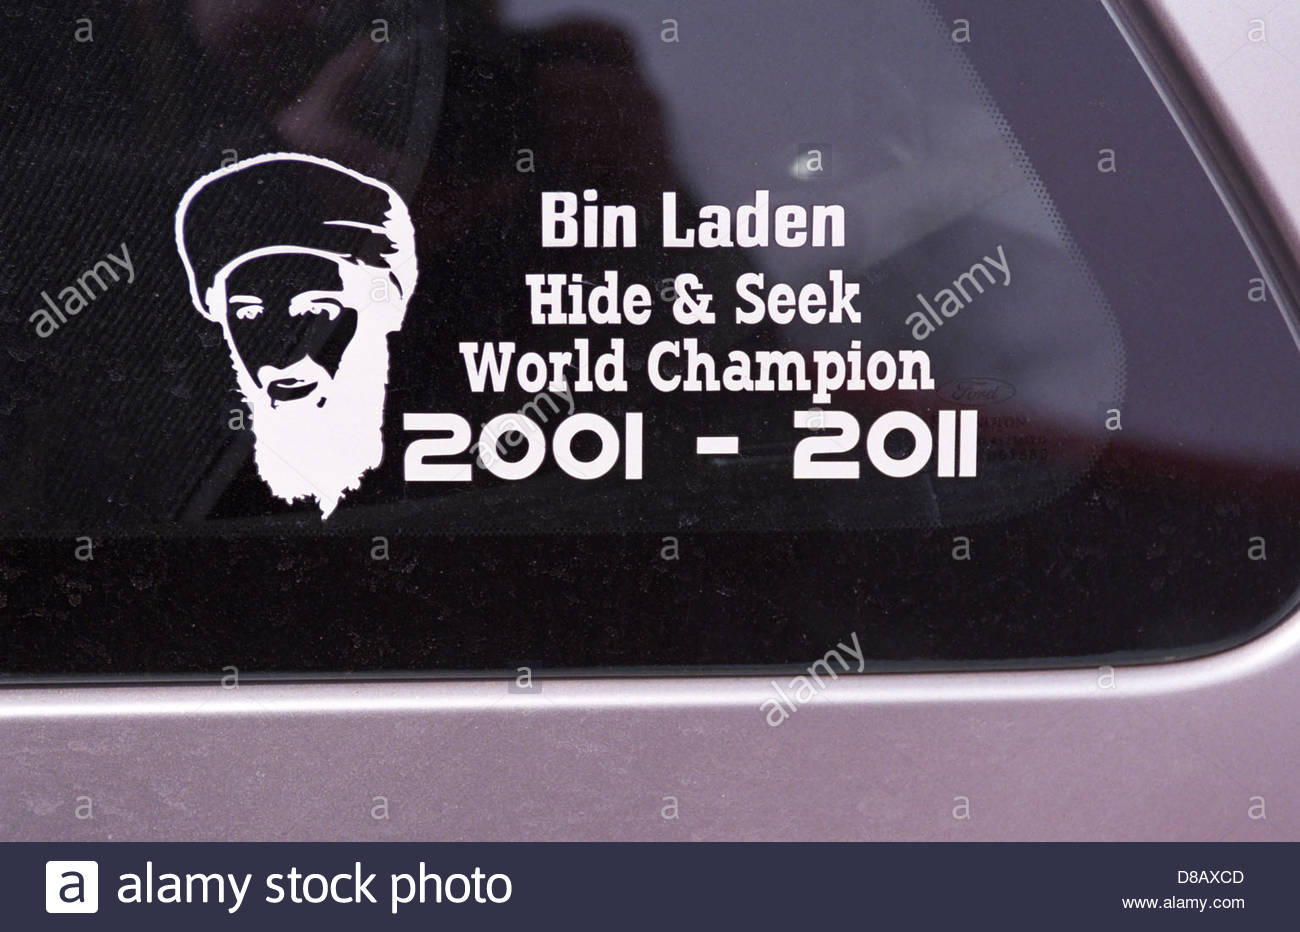 Car sticker celebrating the death of osama bin laden stock image